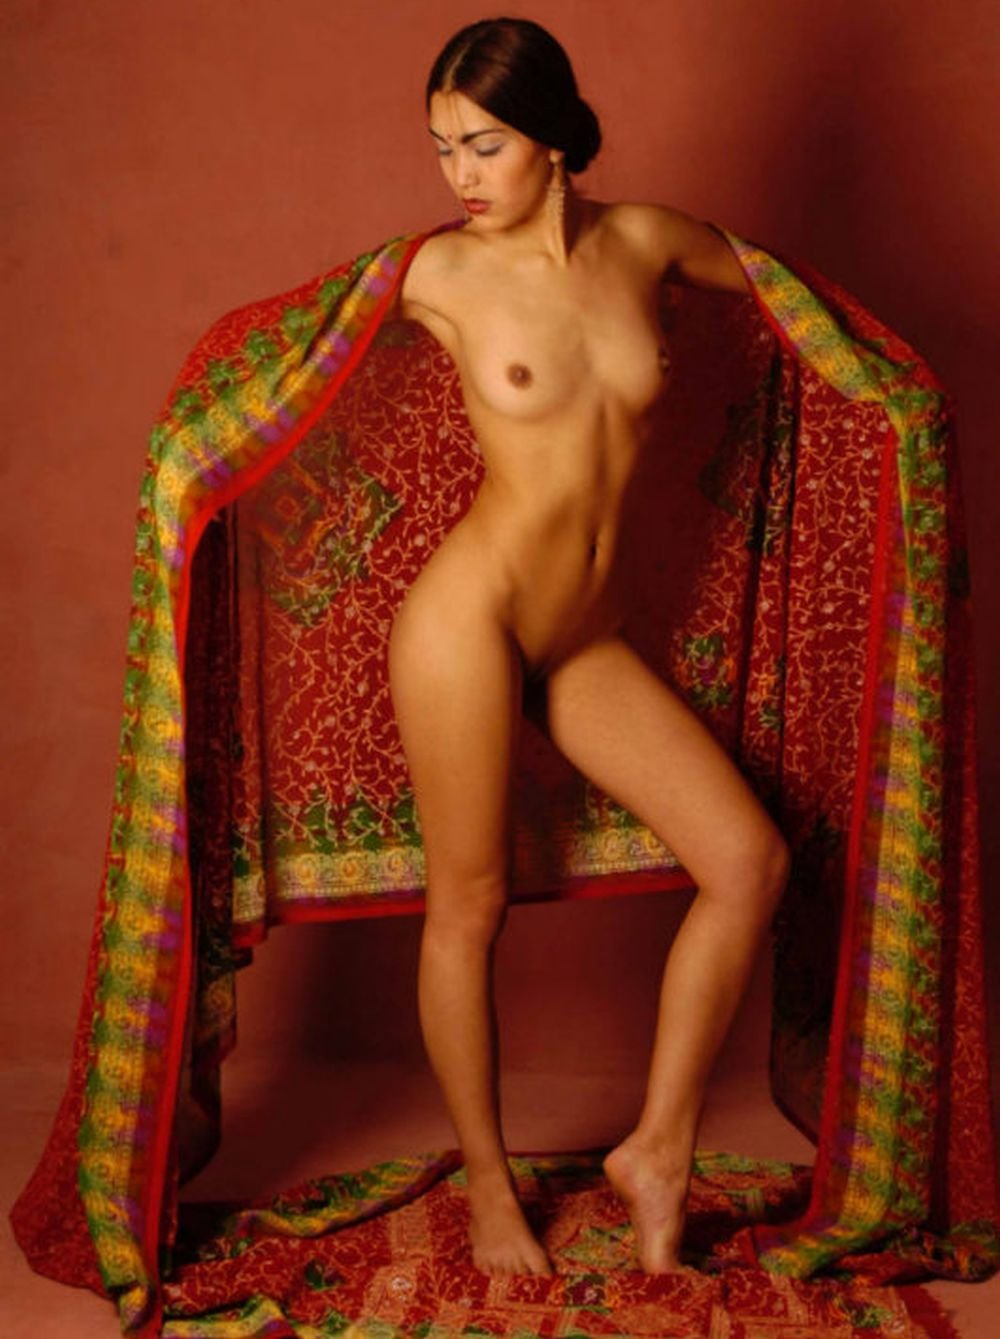 older woman fun nude